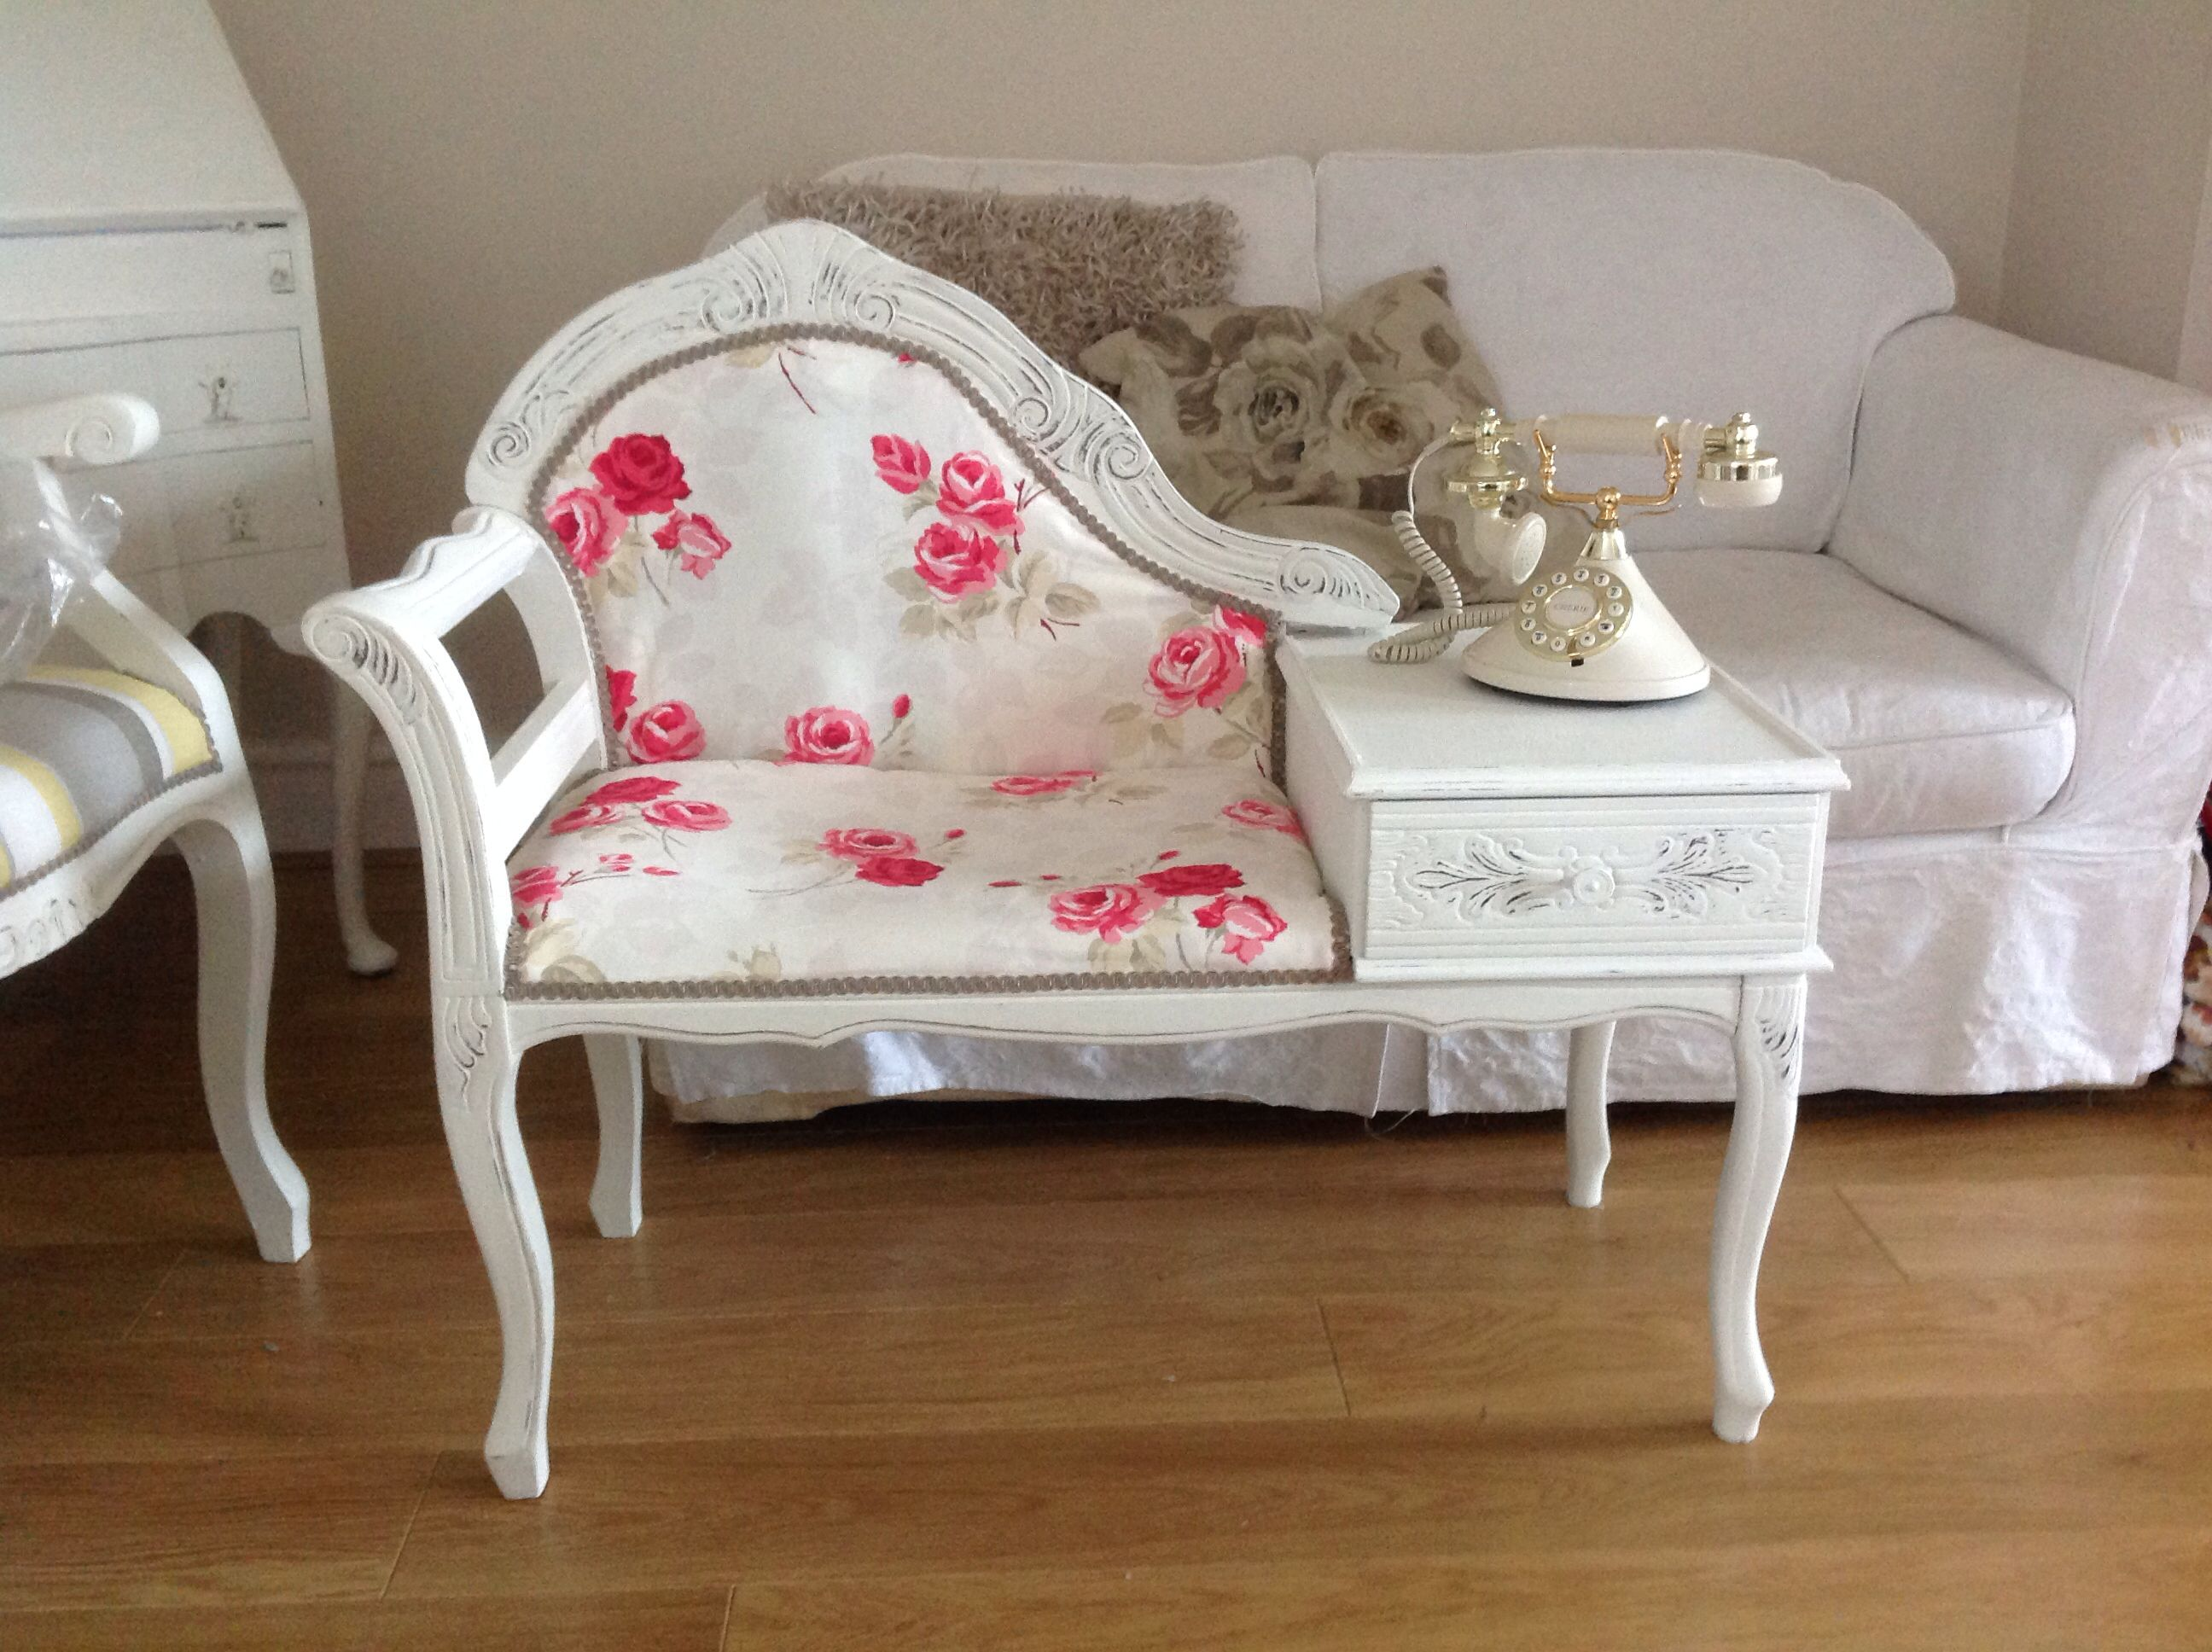 Telephone Table Painted Shabby Chic French Style But With Toile